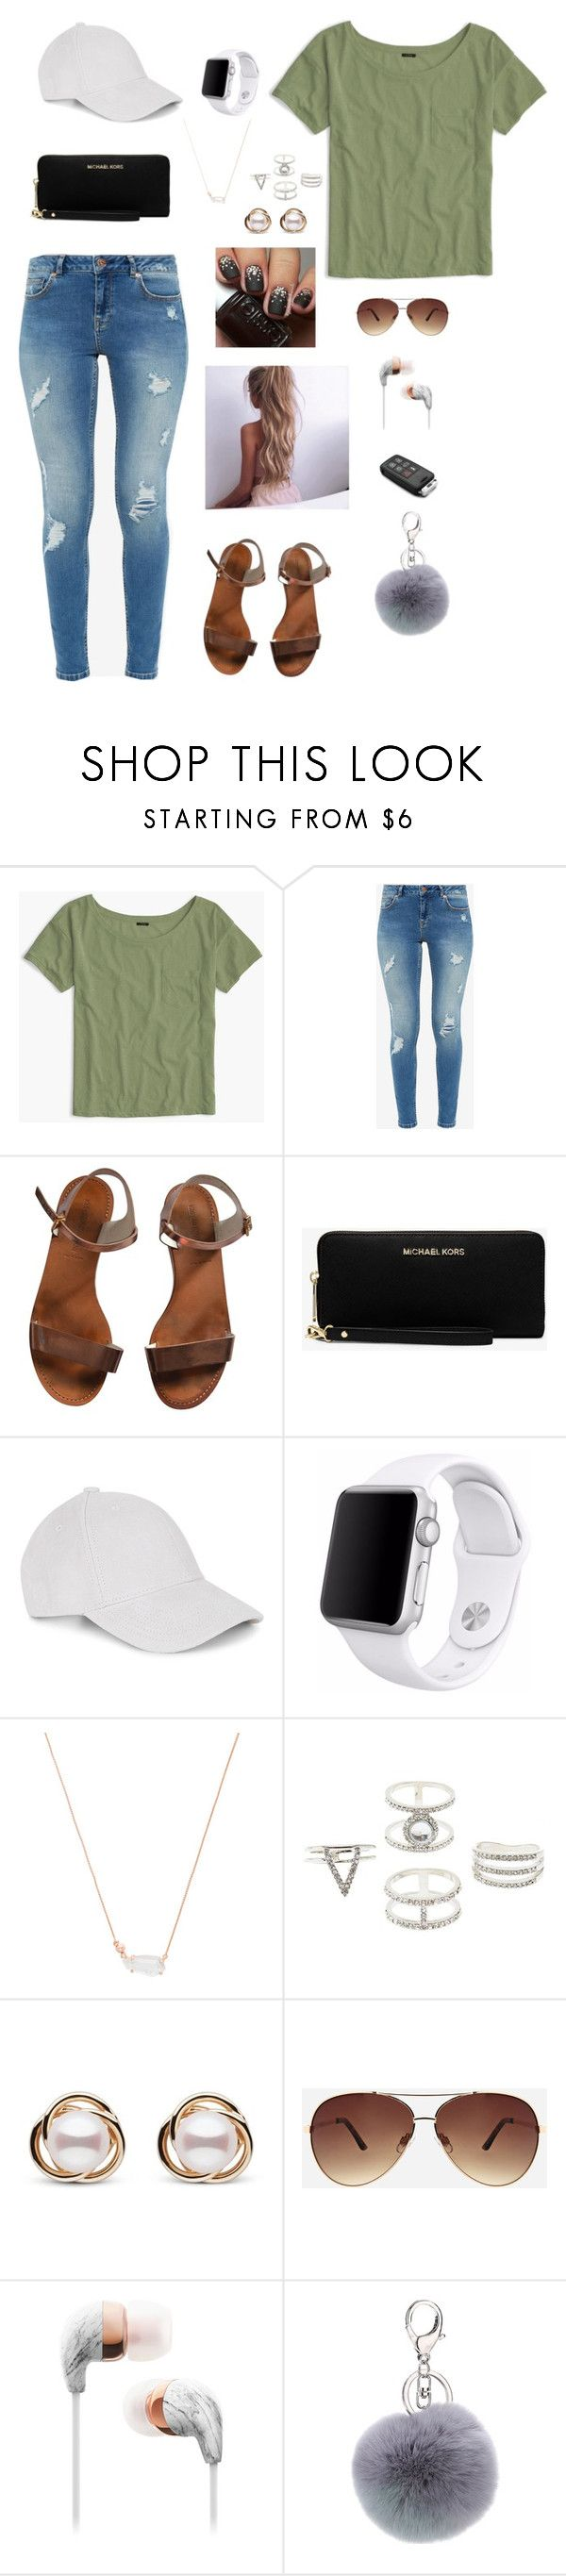 """Untitled #171"" by gabriellaallen on Polyvore featuring J.Crew, Ted Baker, Emporio Armani, Michael Kors, Le Amonie, Apple, Kendra Scott, Charlotte Russe, Trilogy and Ashley Stewart"